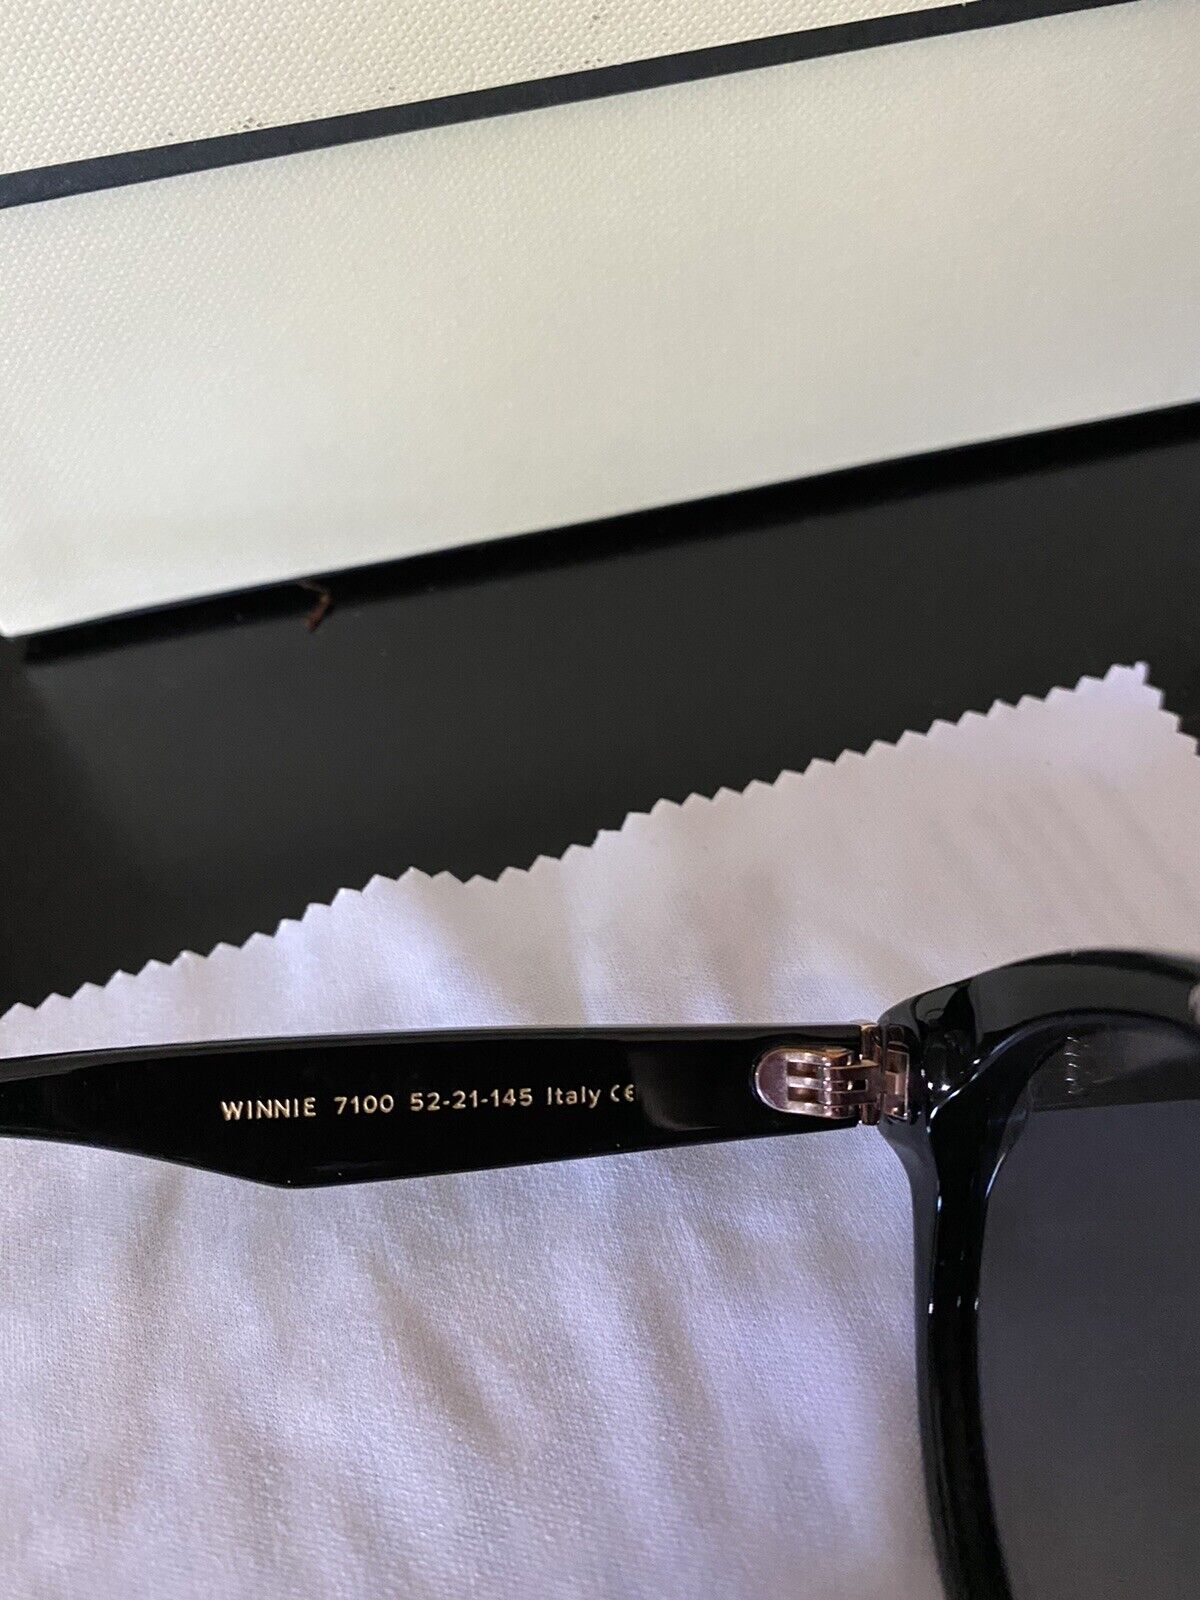 Warby Parker Winnie Sunglasses (made In Italy) - image 6